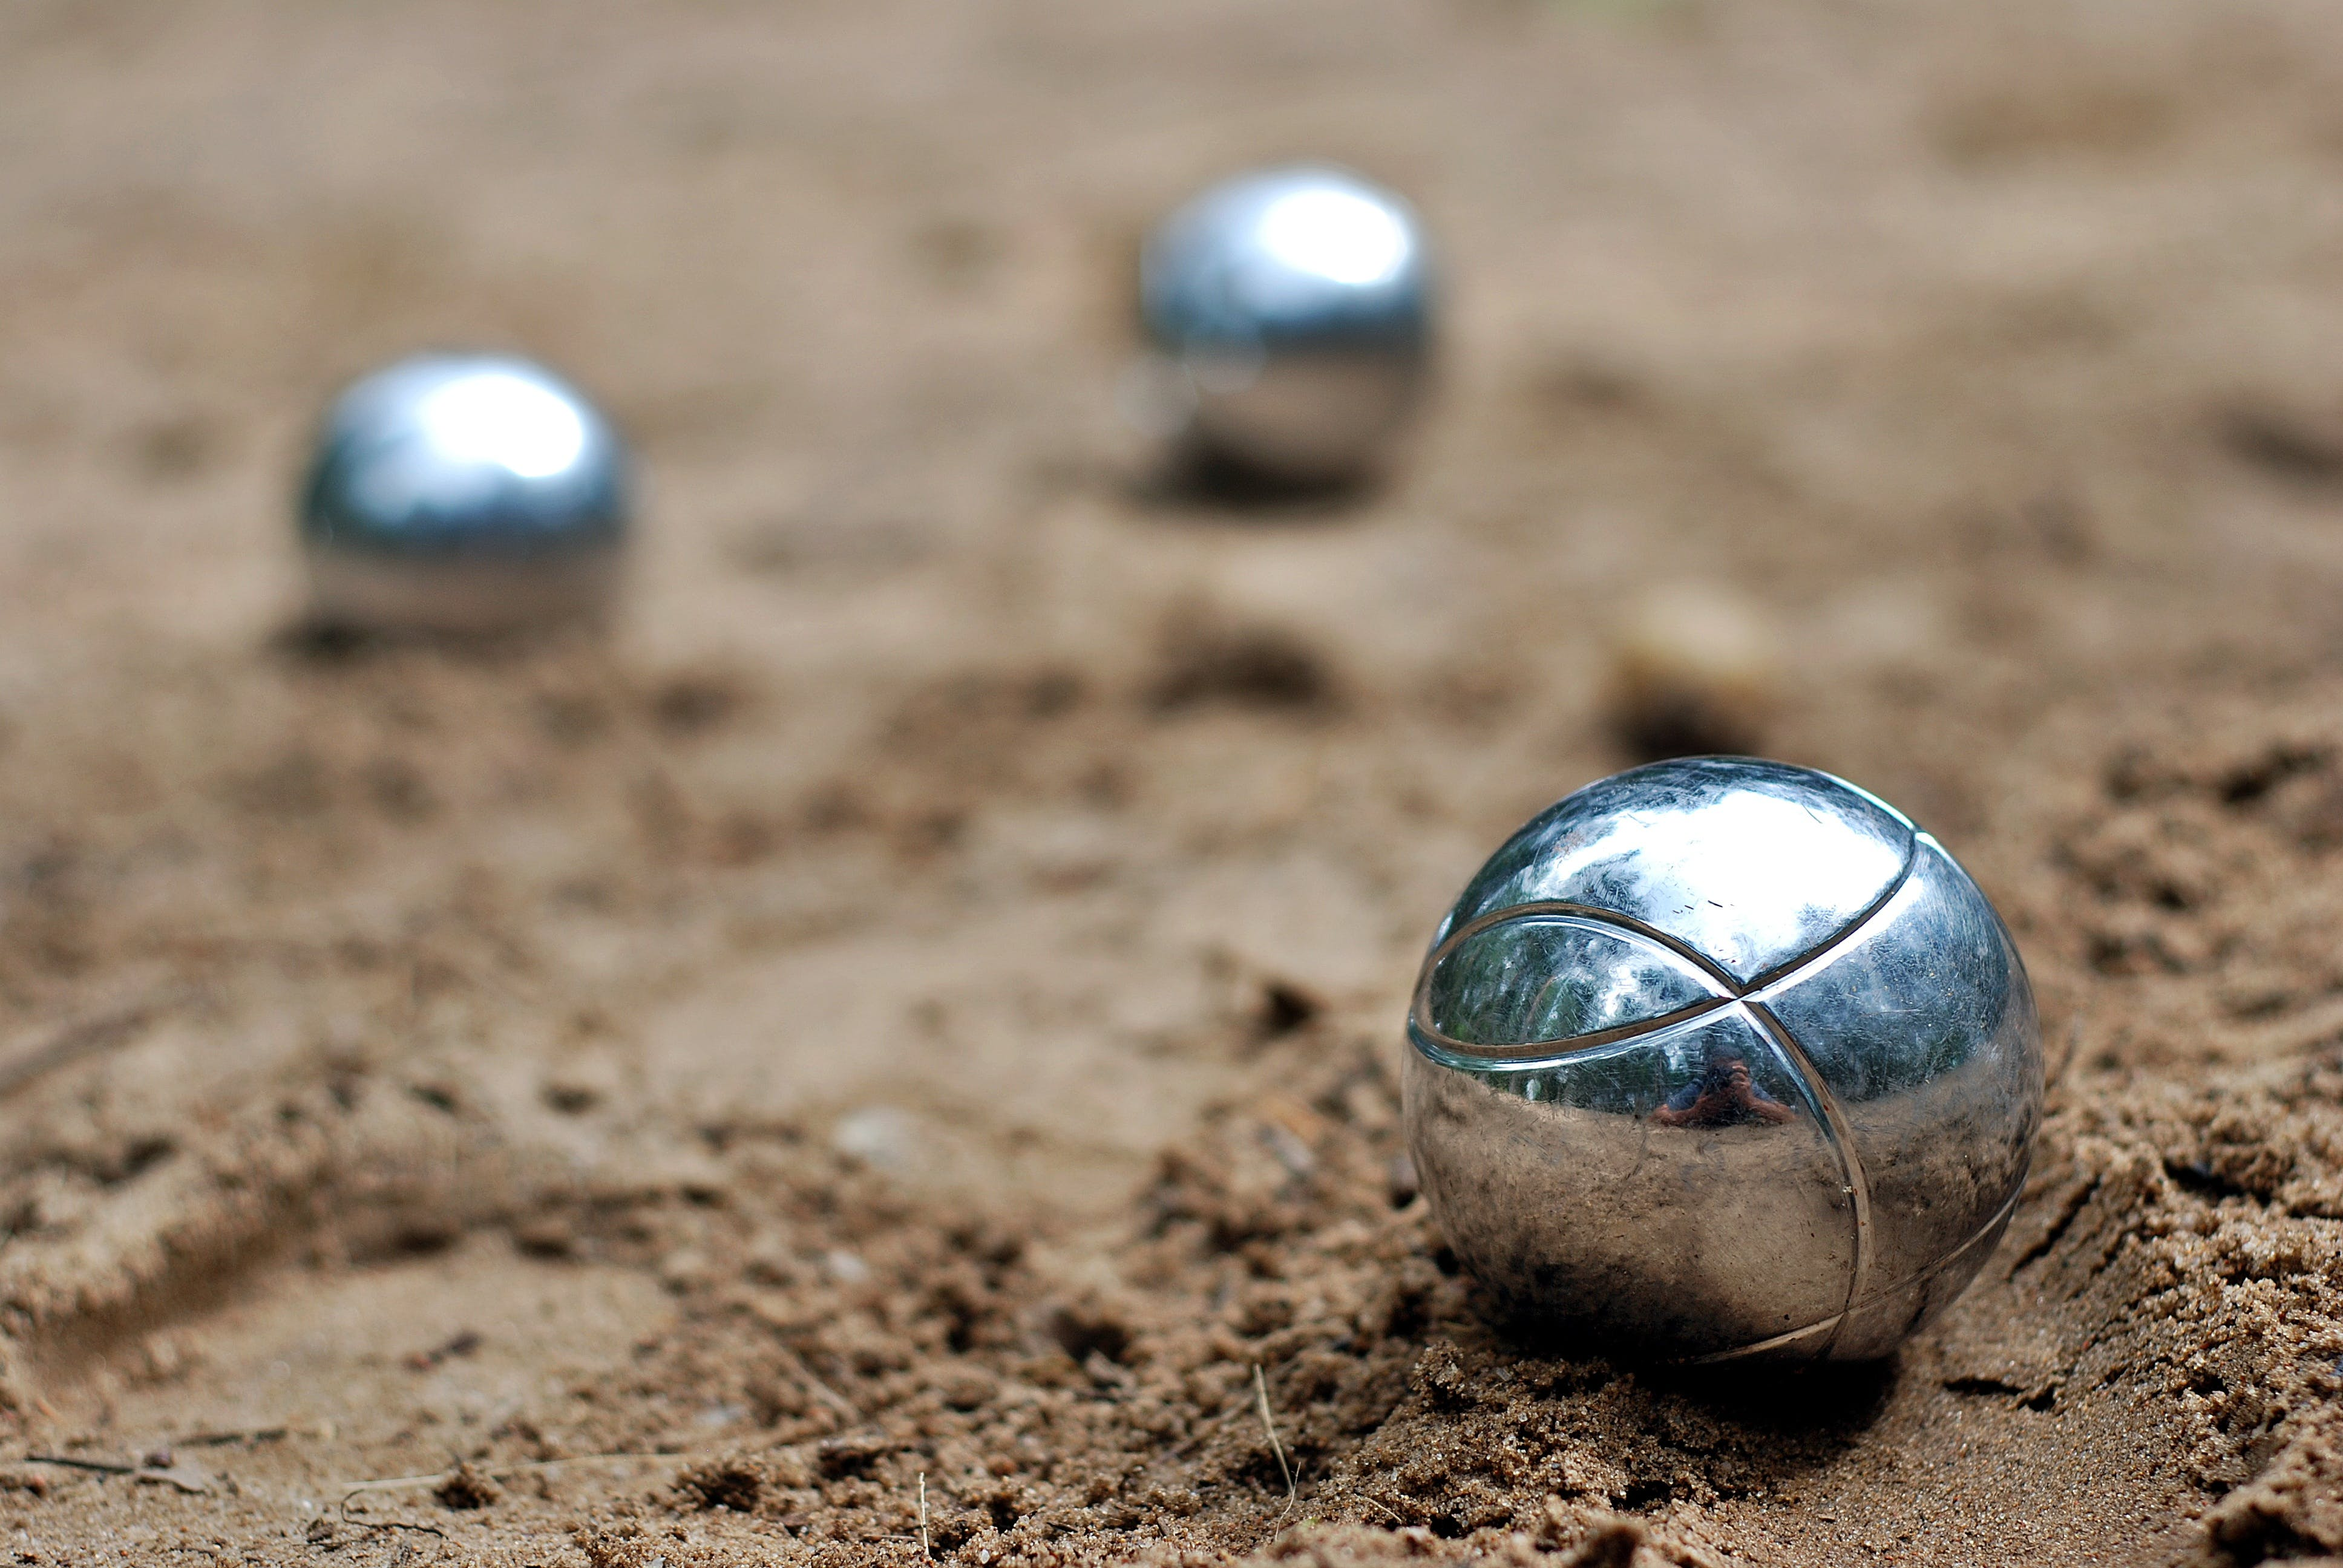 Closeup Photography of Silver Balls